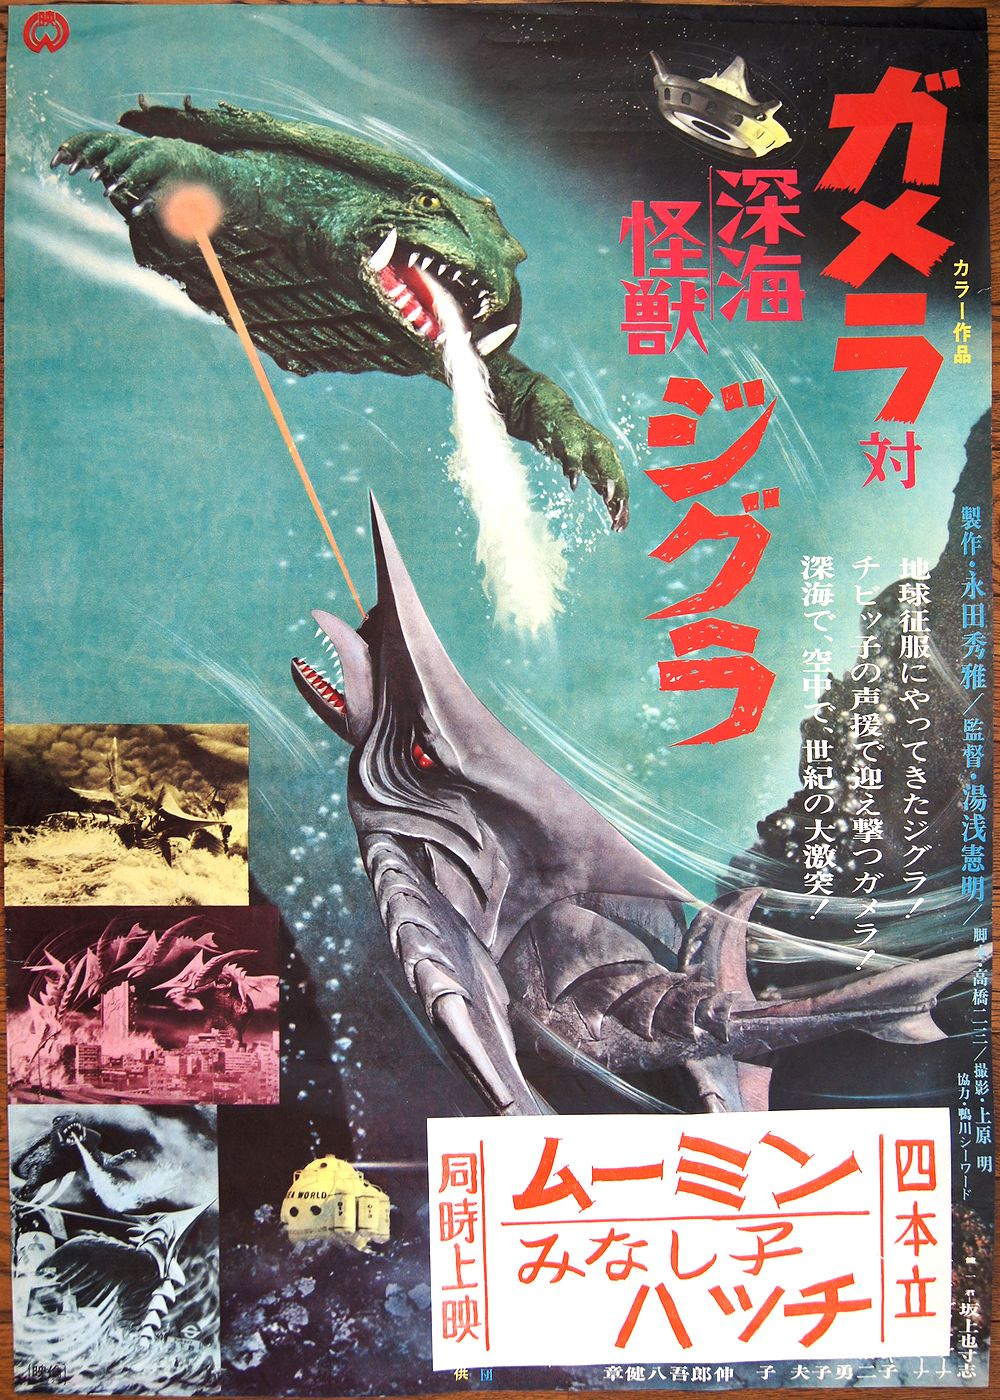 gamera_vs_zigra_poster_1971_01.jpg